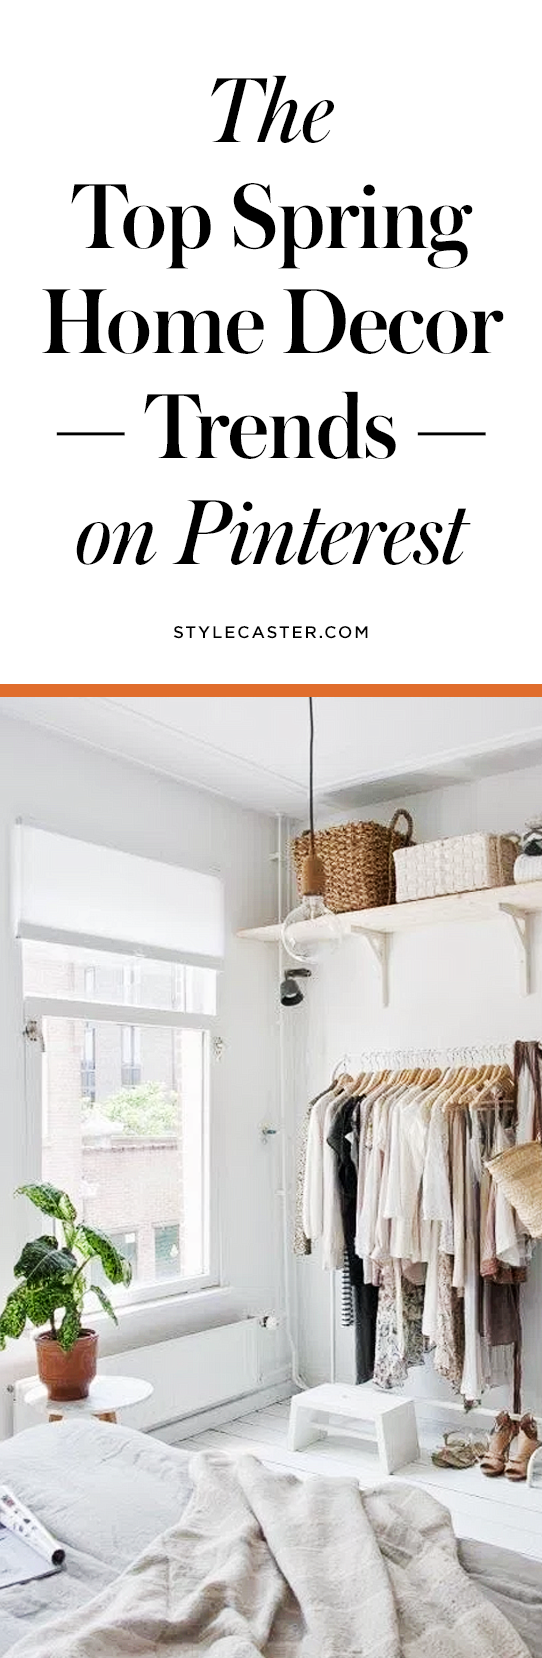 The top spring home decor trends | @stylecaster